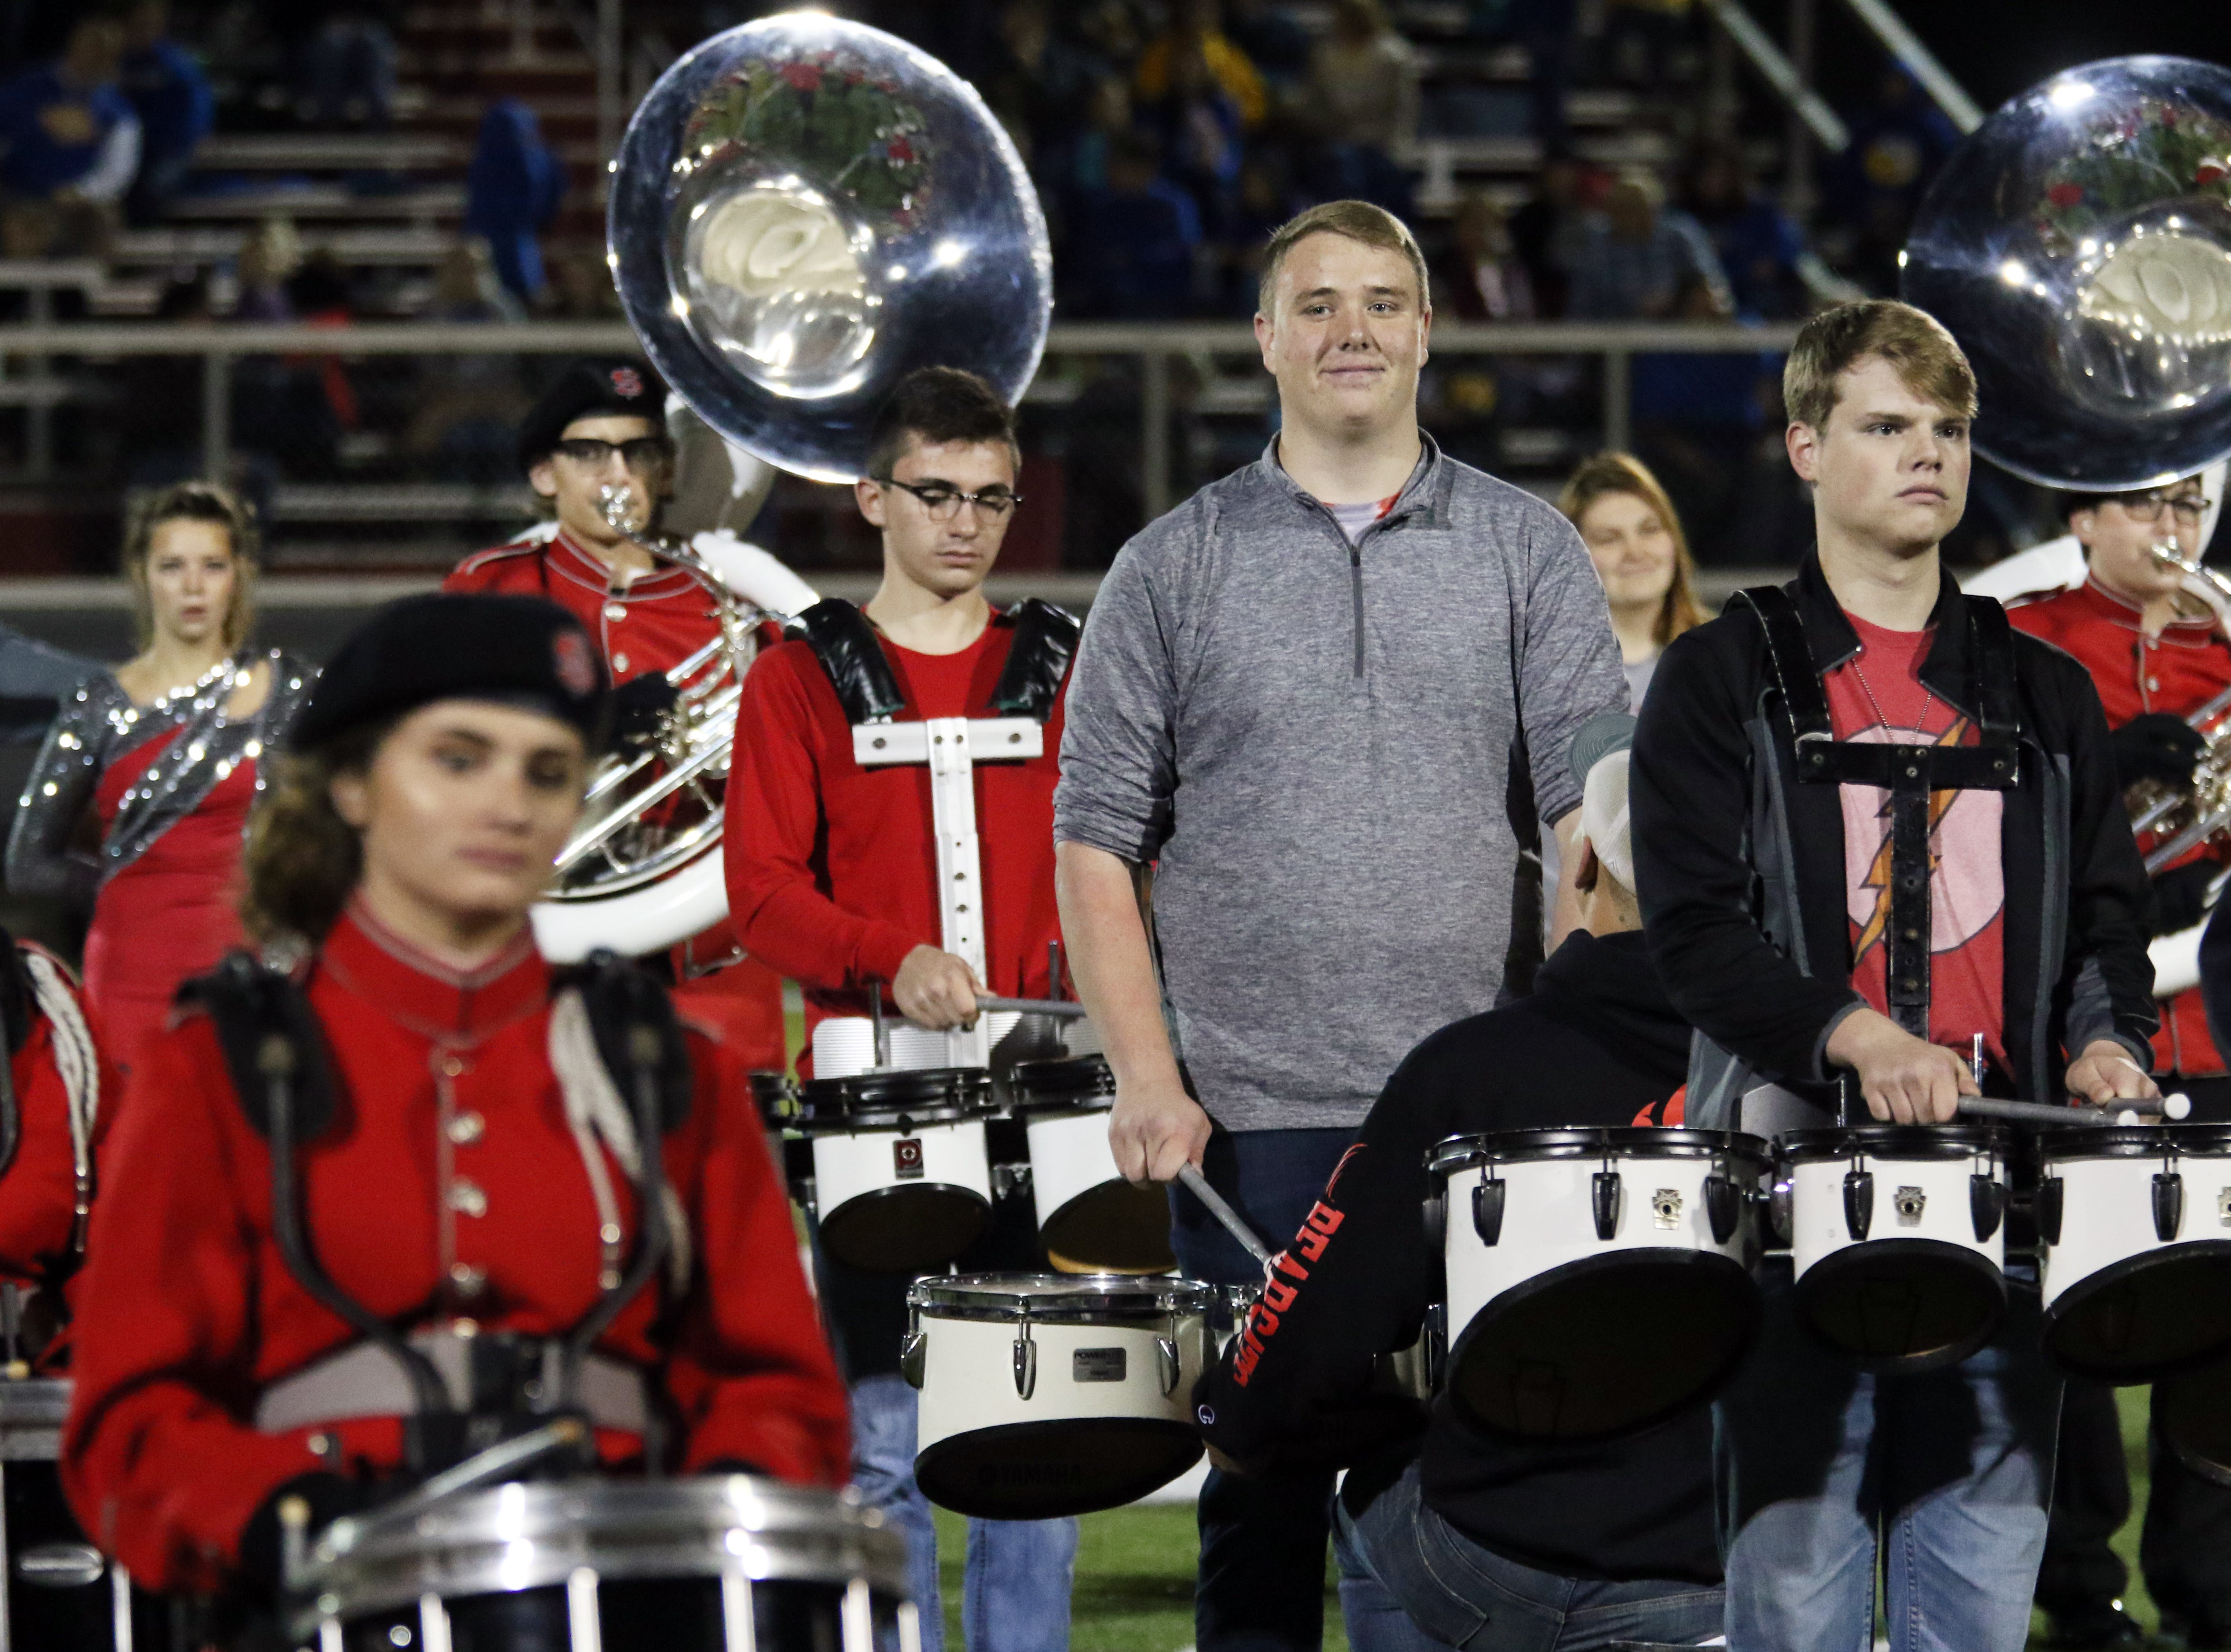 The Sheridan High School marching band, with help from alumni performs during halftime of Friday's game against Philo.